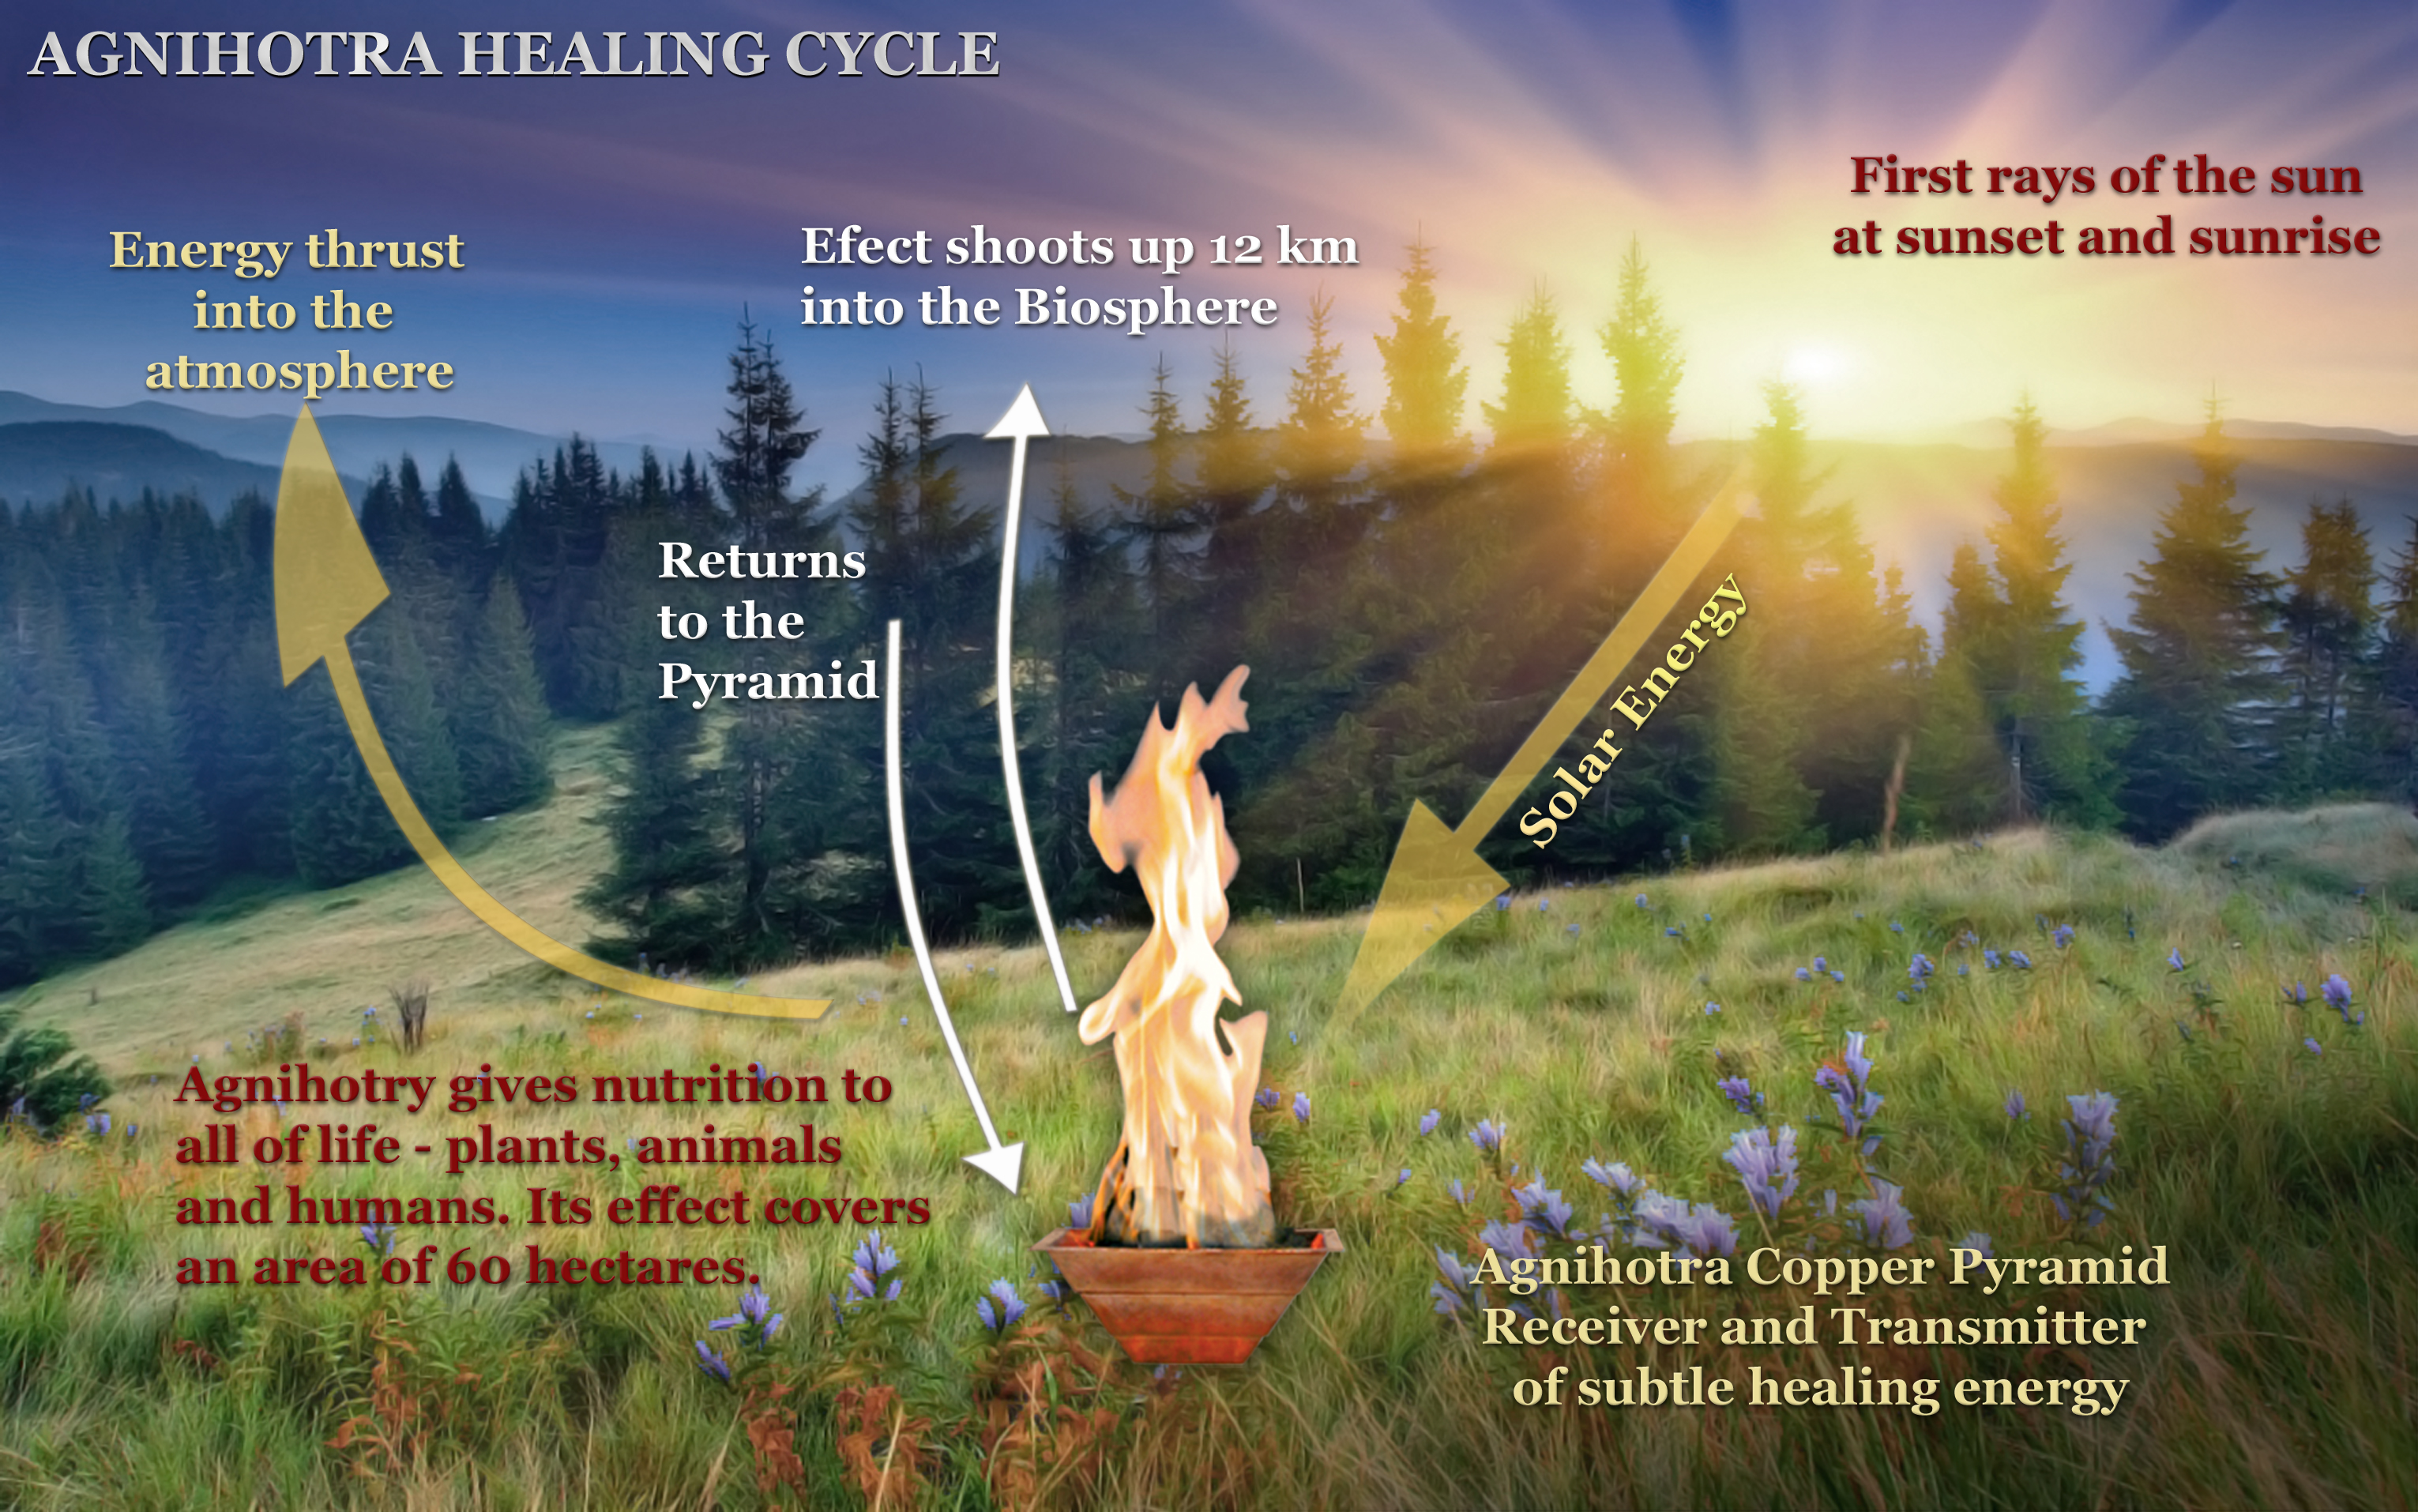 EFFECTS OF AGNIHOTRA